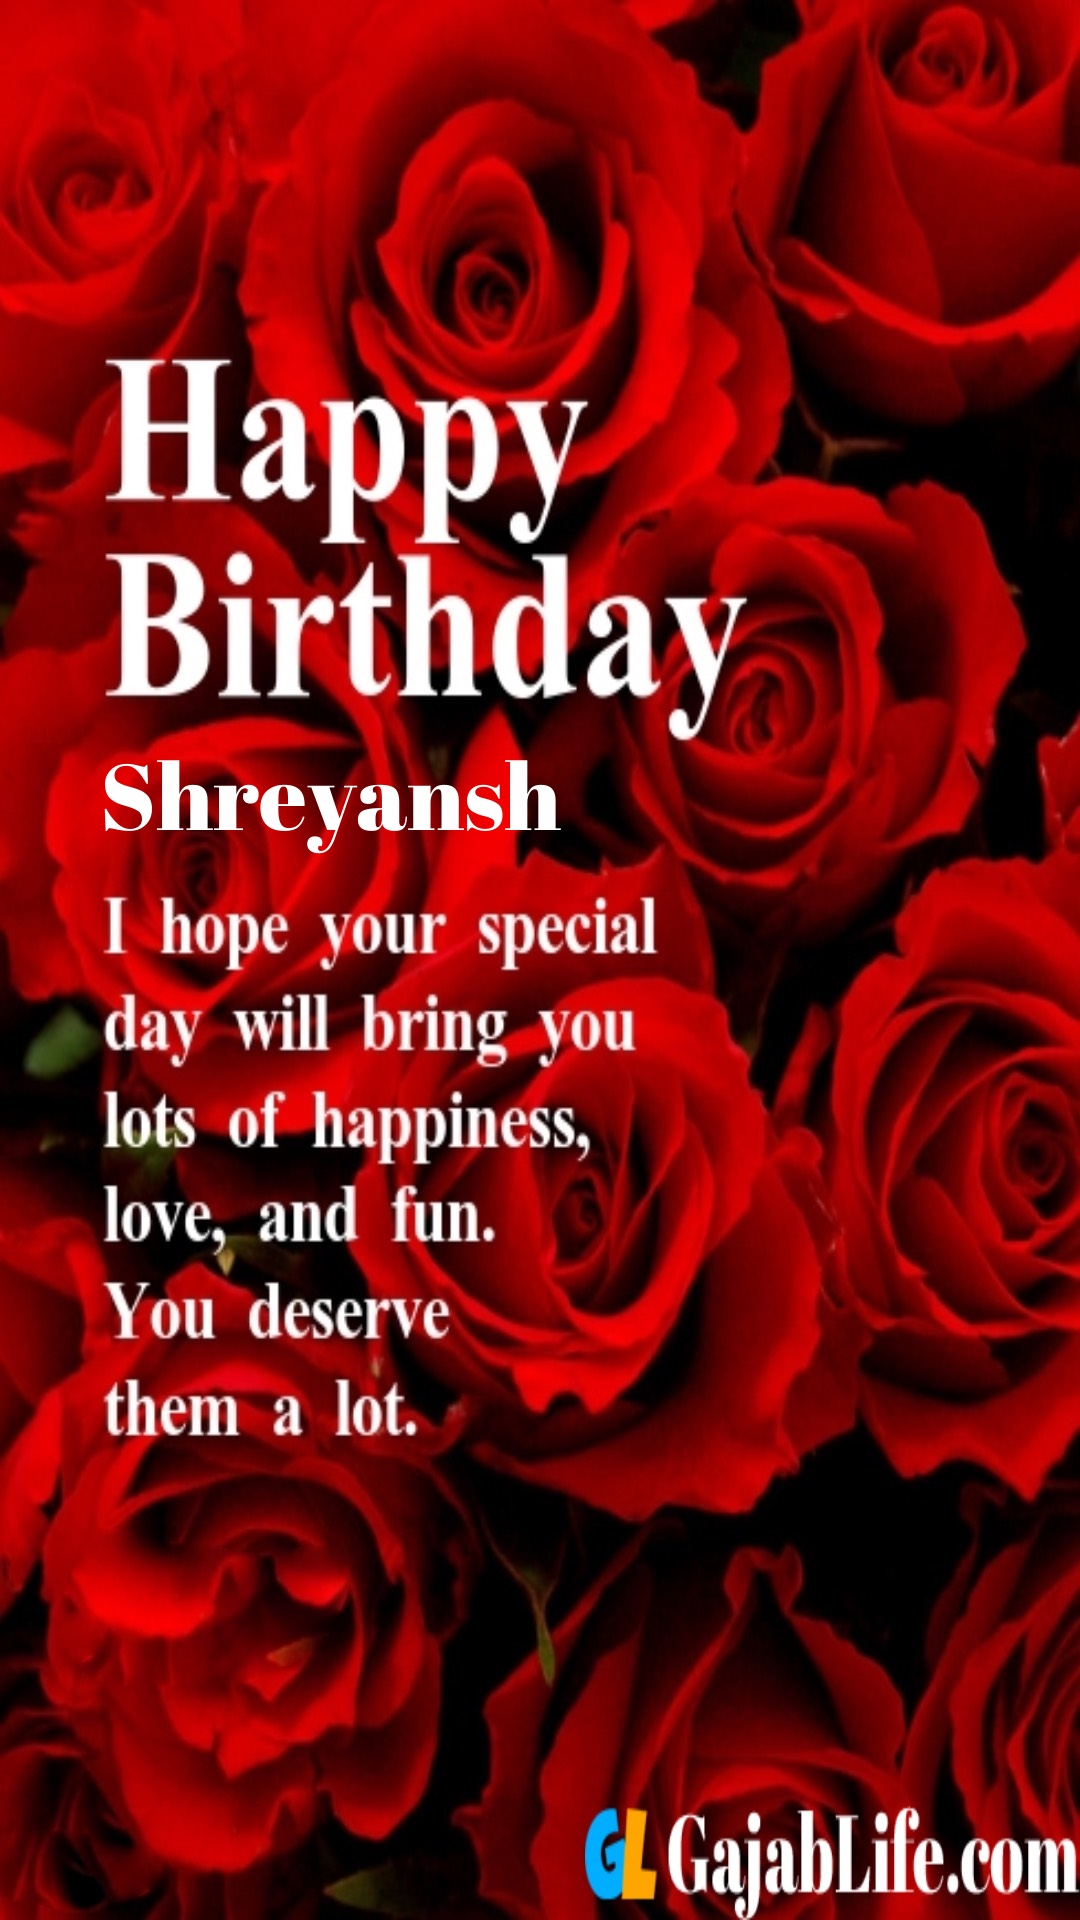 Shreyansh birthday greeting card with rose & love